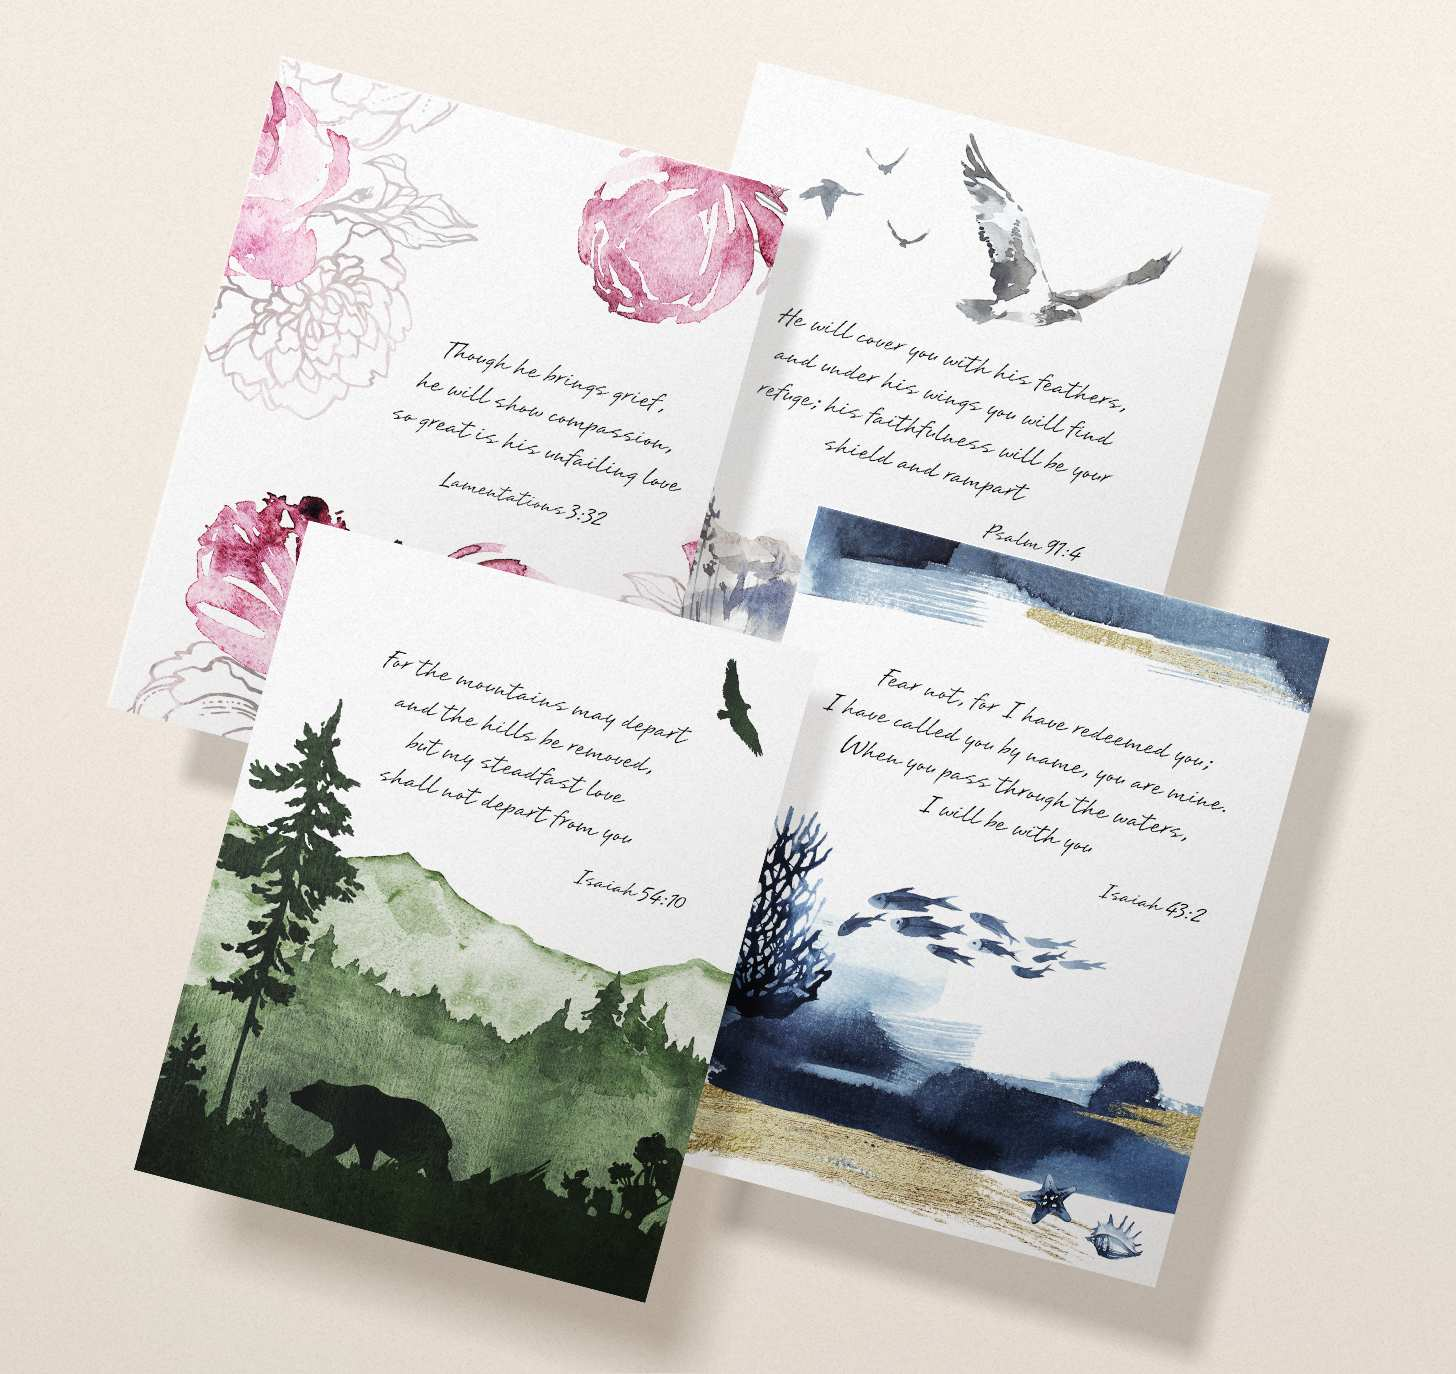 Four overlapping sympathy cards with pink, green, blue, and gray themes